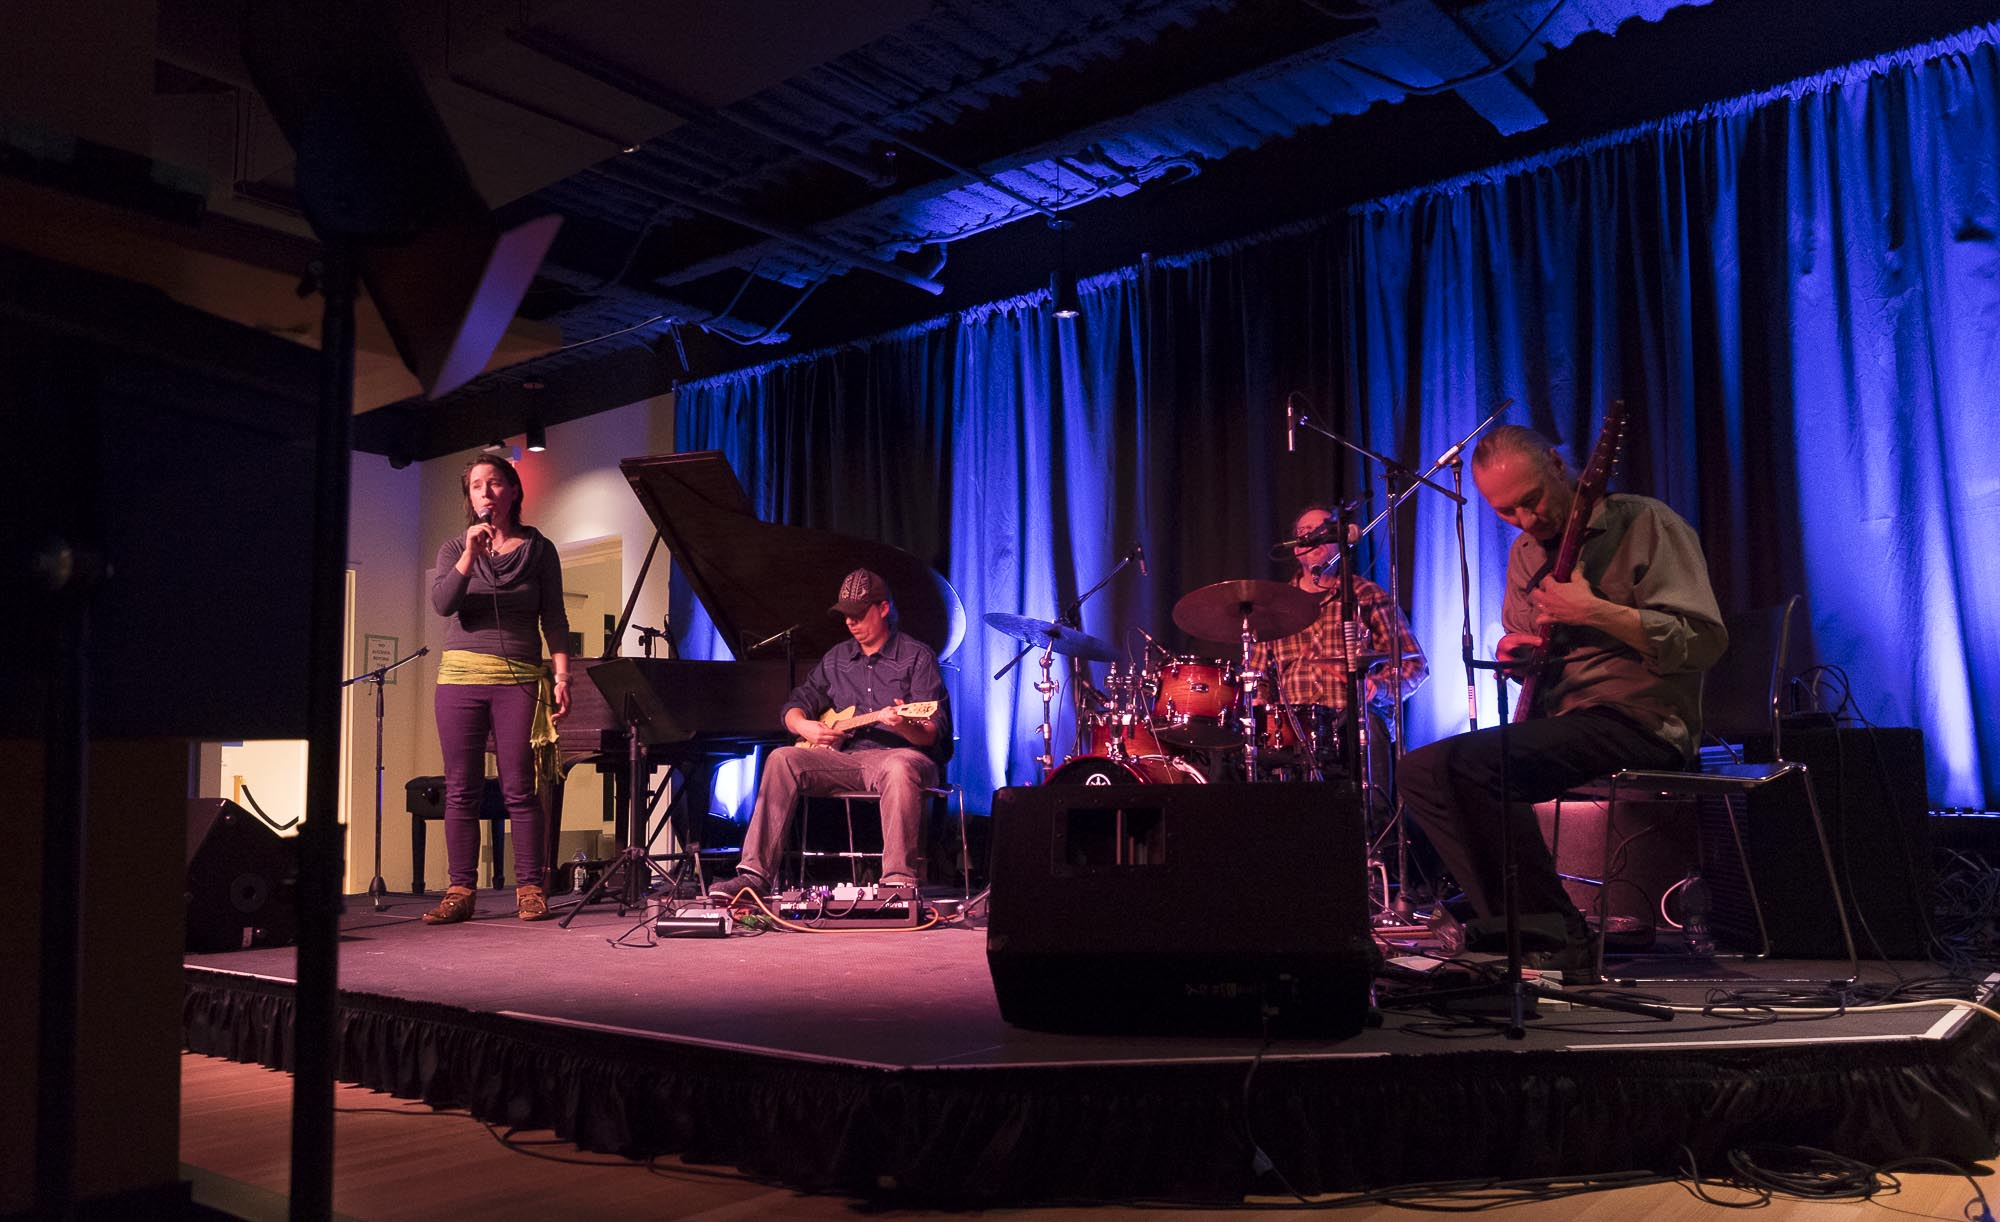 Calgary Launch Concert - Band performing DSCF4867.jpg